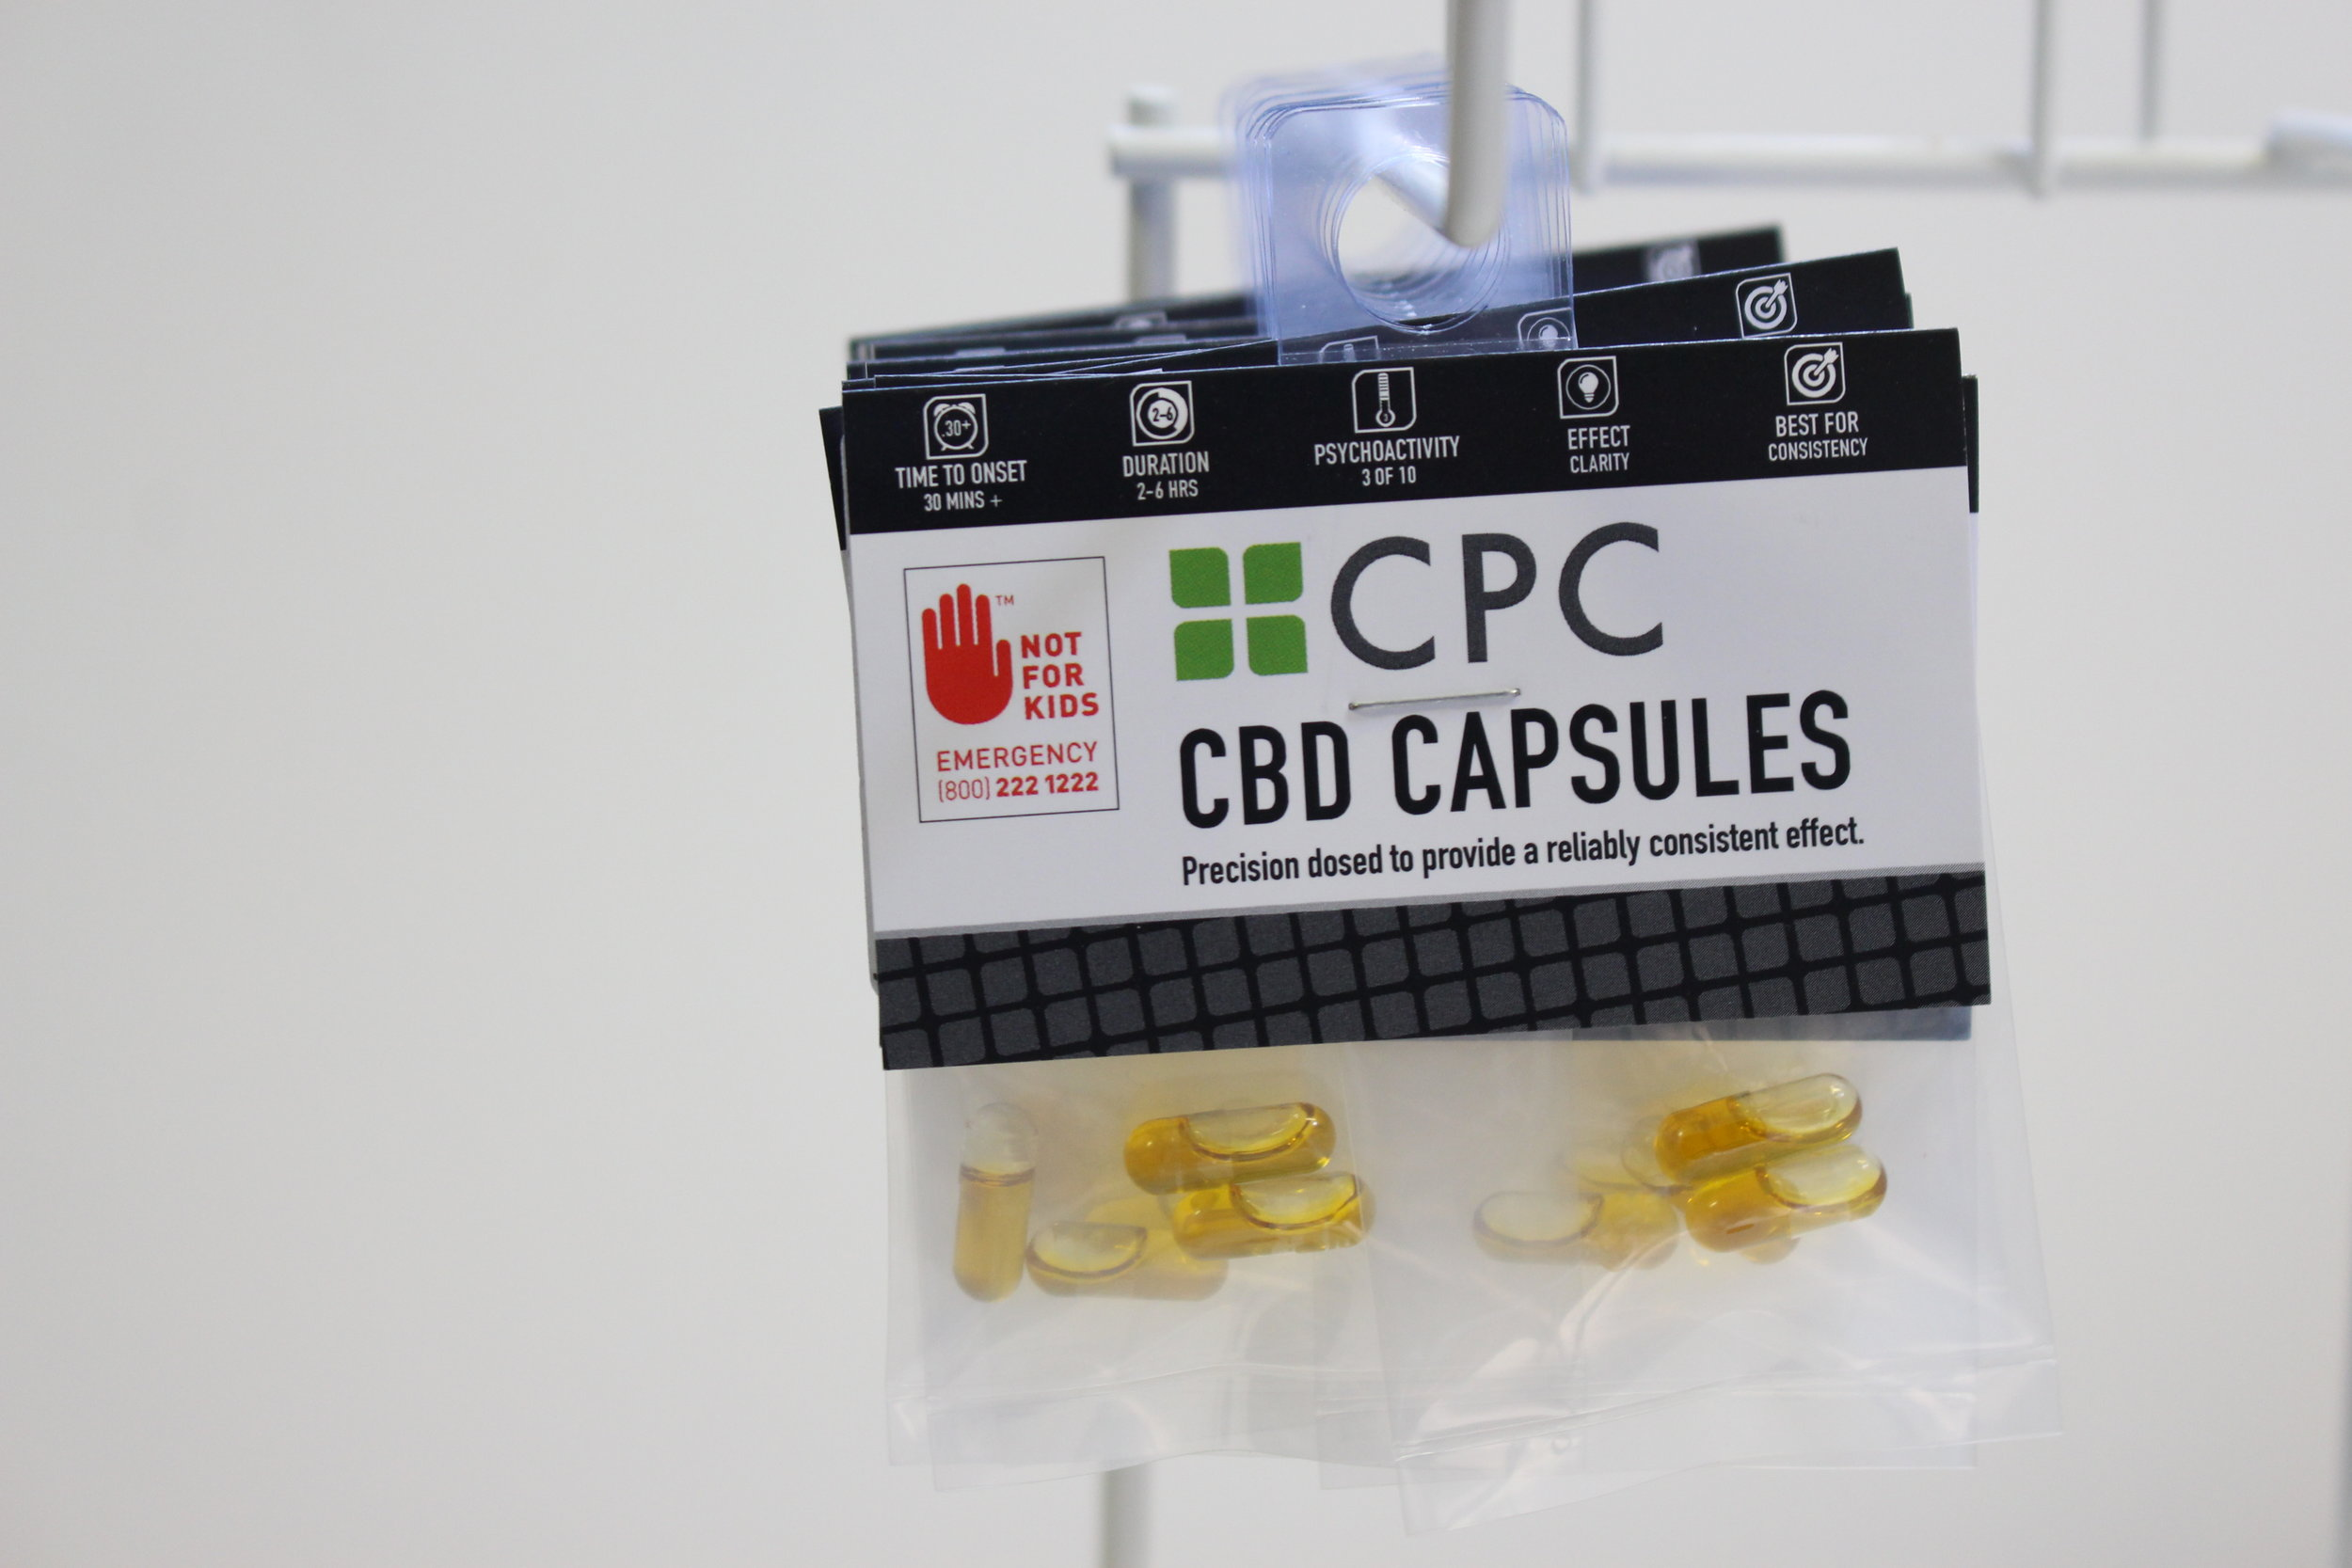 Pack of Four 5mg CBD / 5mg THC capsules